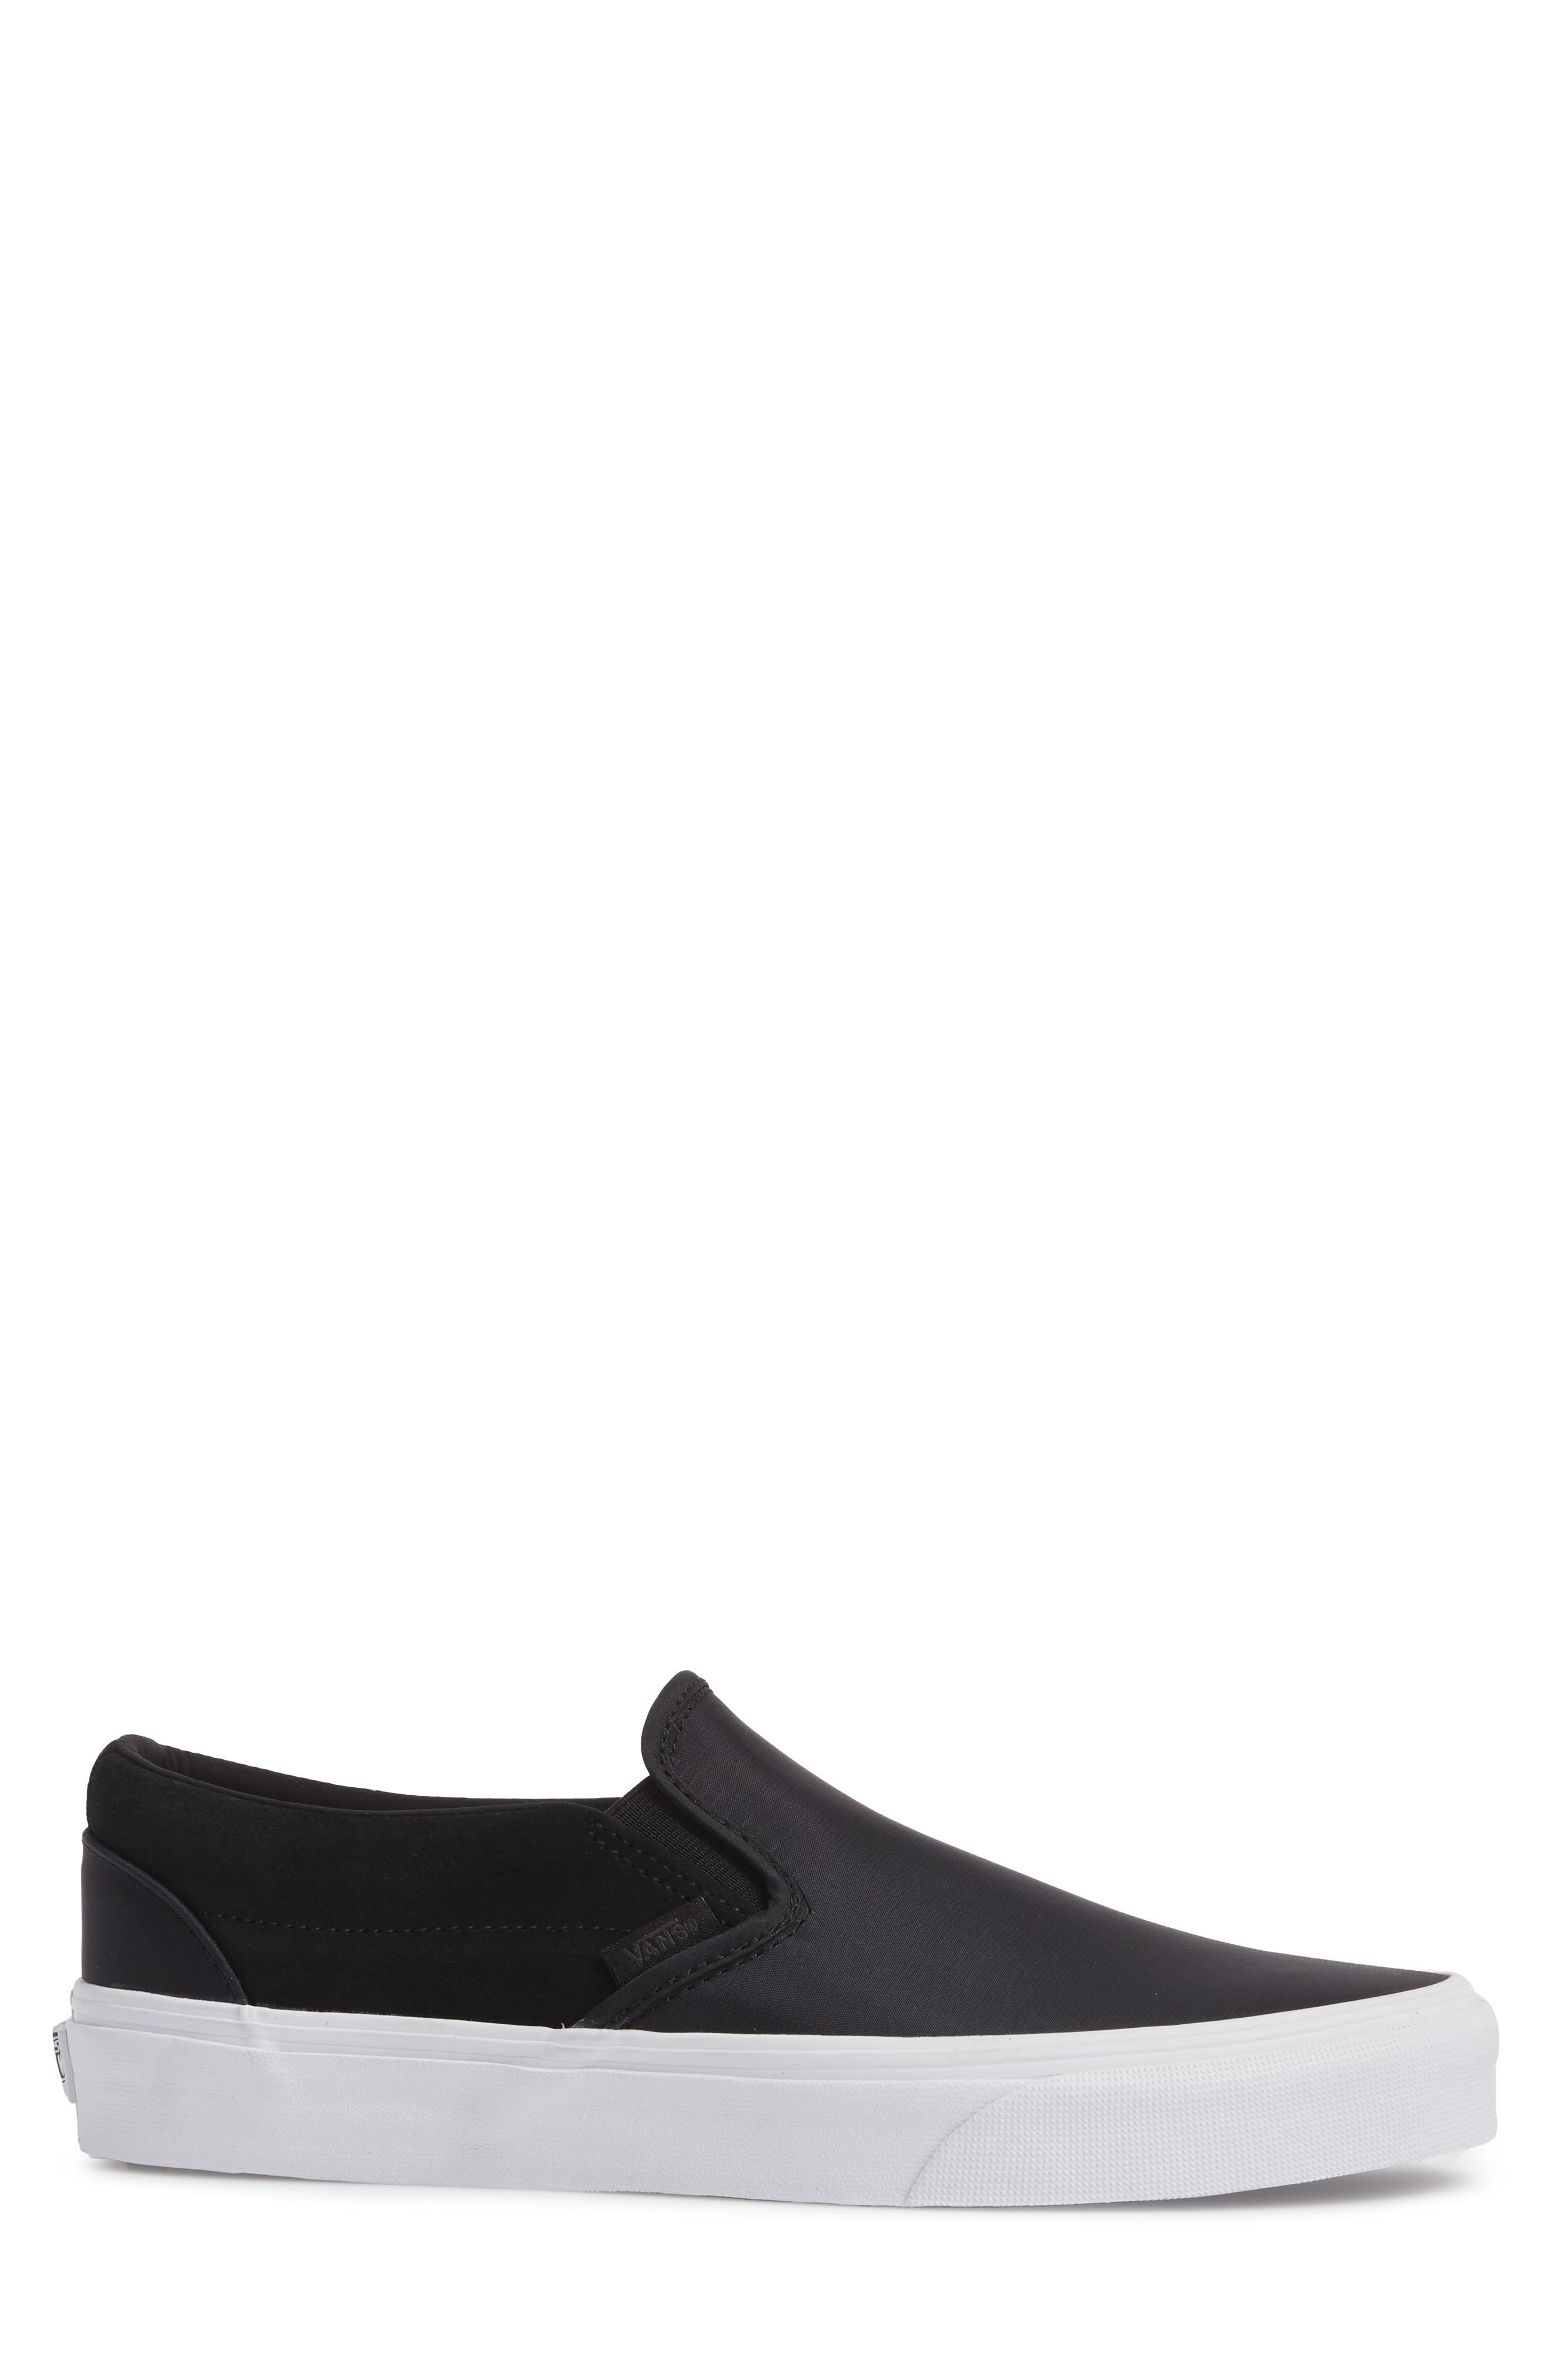 Surplus Nylon Slip-On Sneaker,                             Alternate thumbnail 3, color,                             001